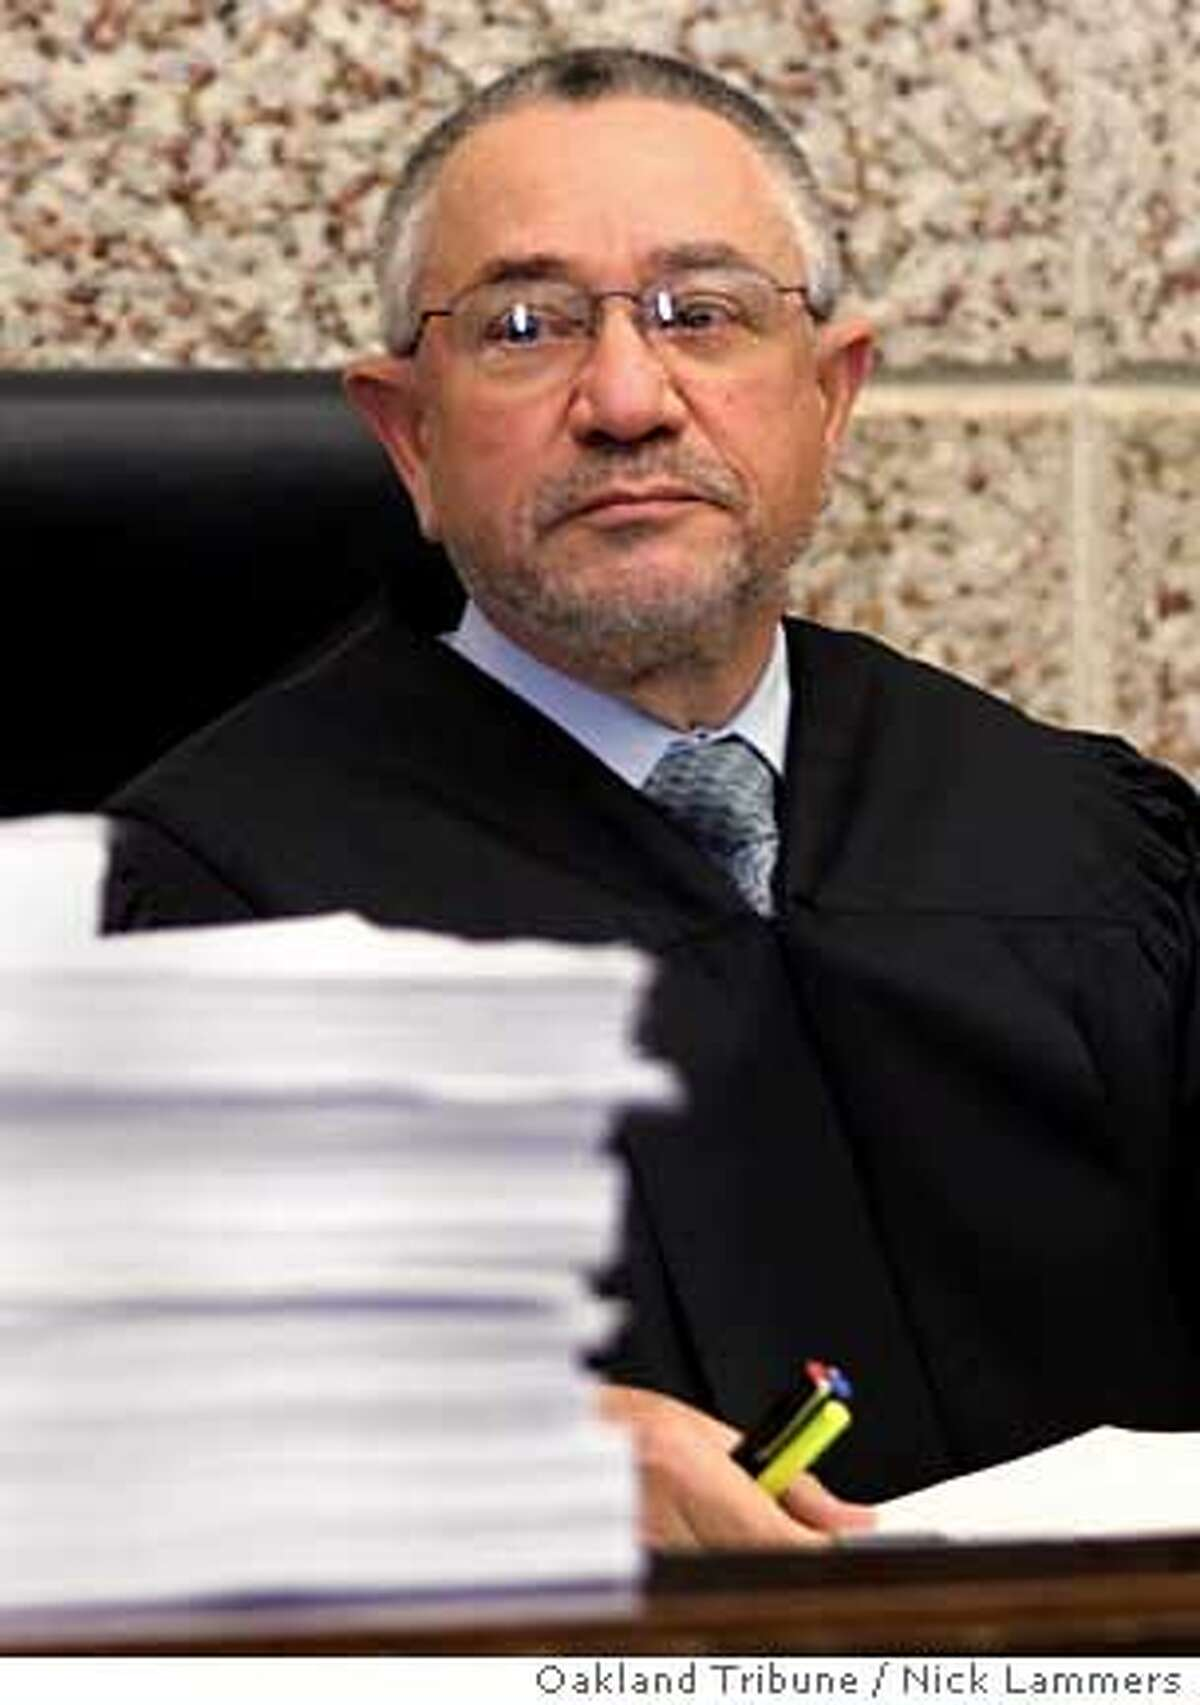 Alameda County State Censures Judge But He Can Keep Job Jurist Repeatedly Missed Deadlines Signed False Affidavits